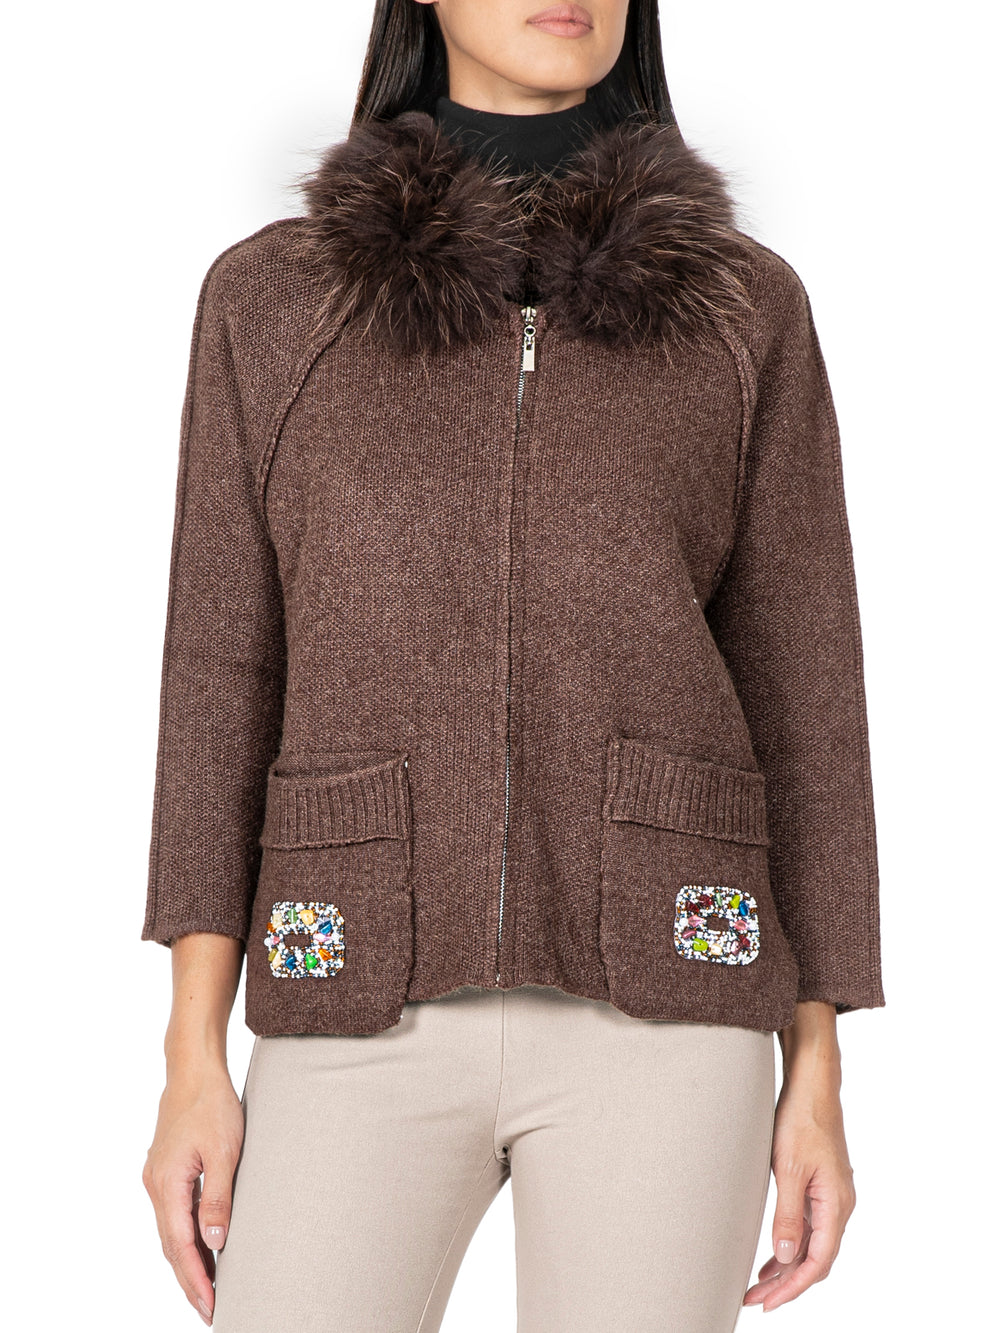 Embellished Cashmere Jacket